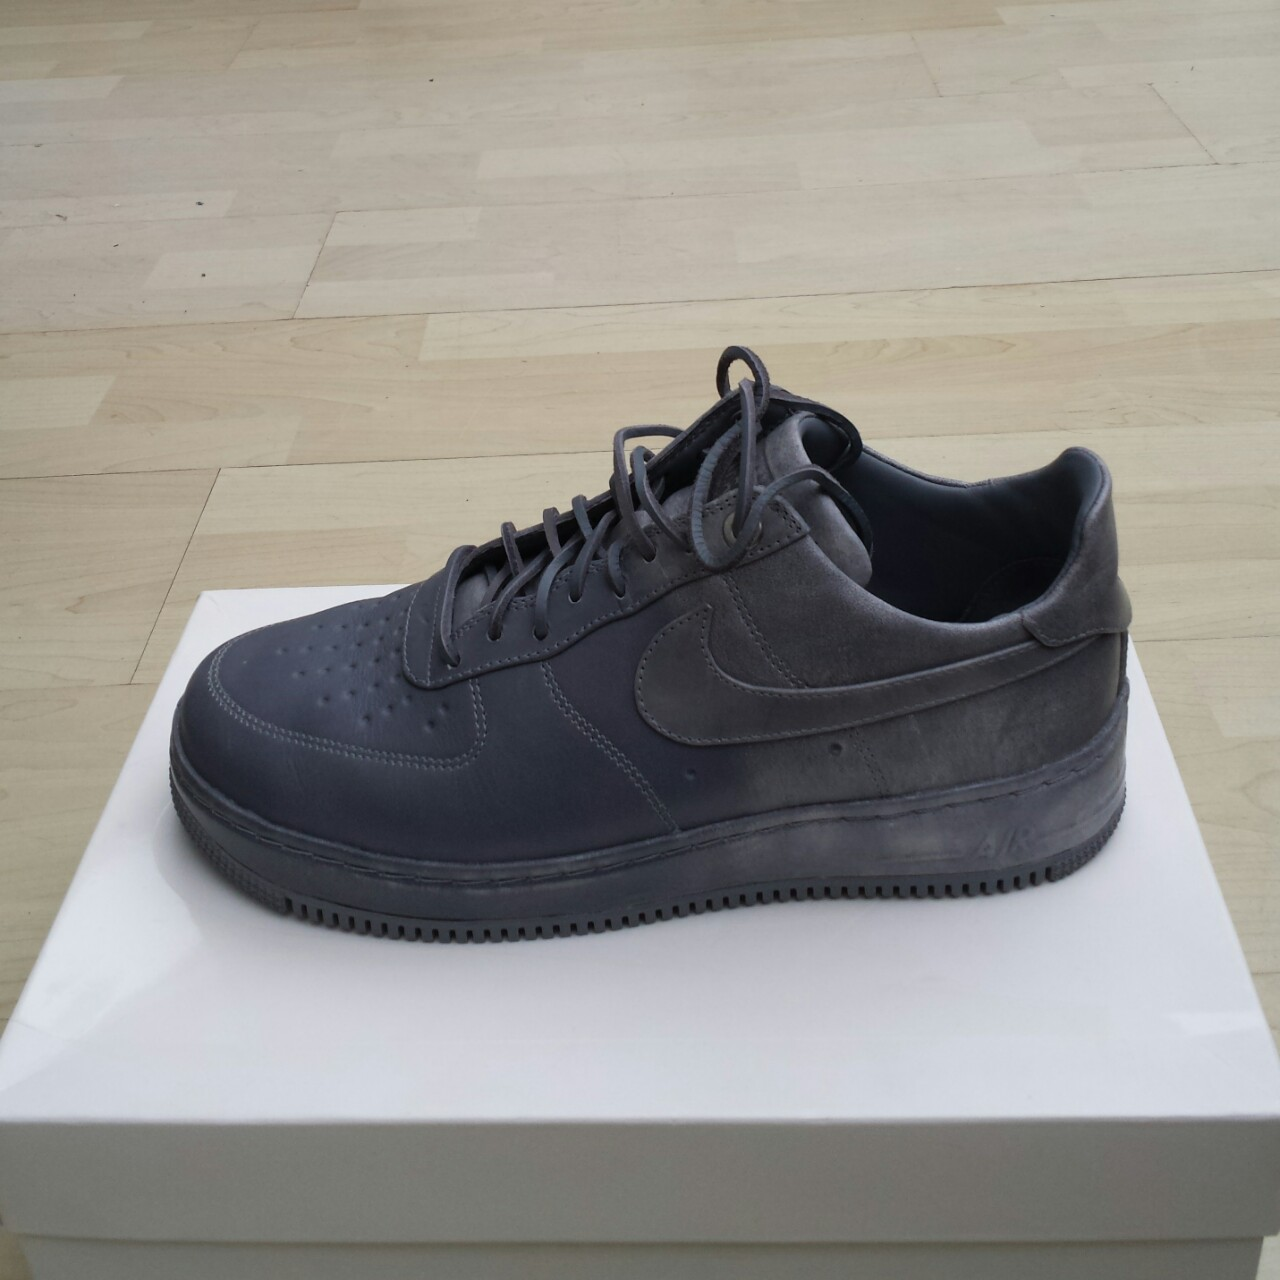 Nike air force 1 x pigalle Brand new with box + Depop